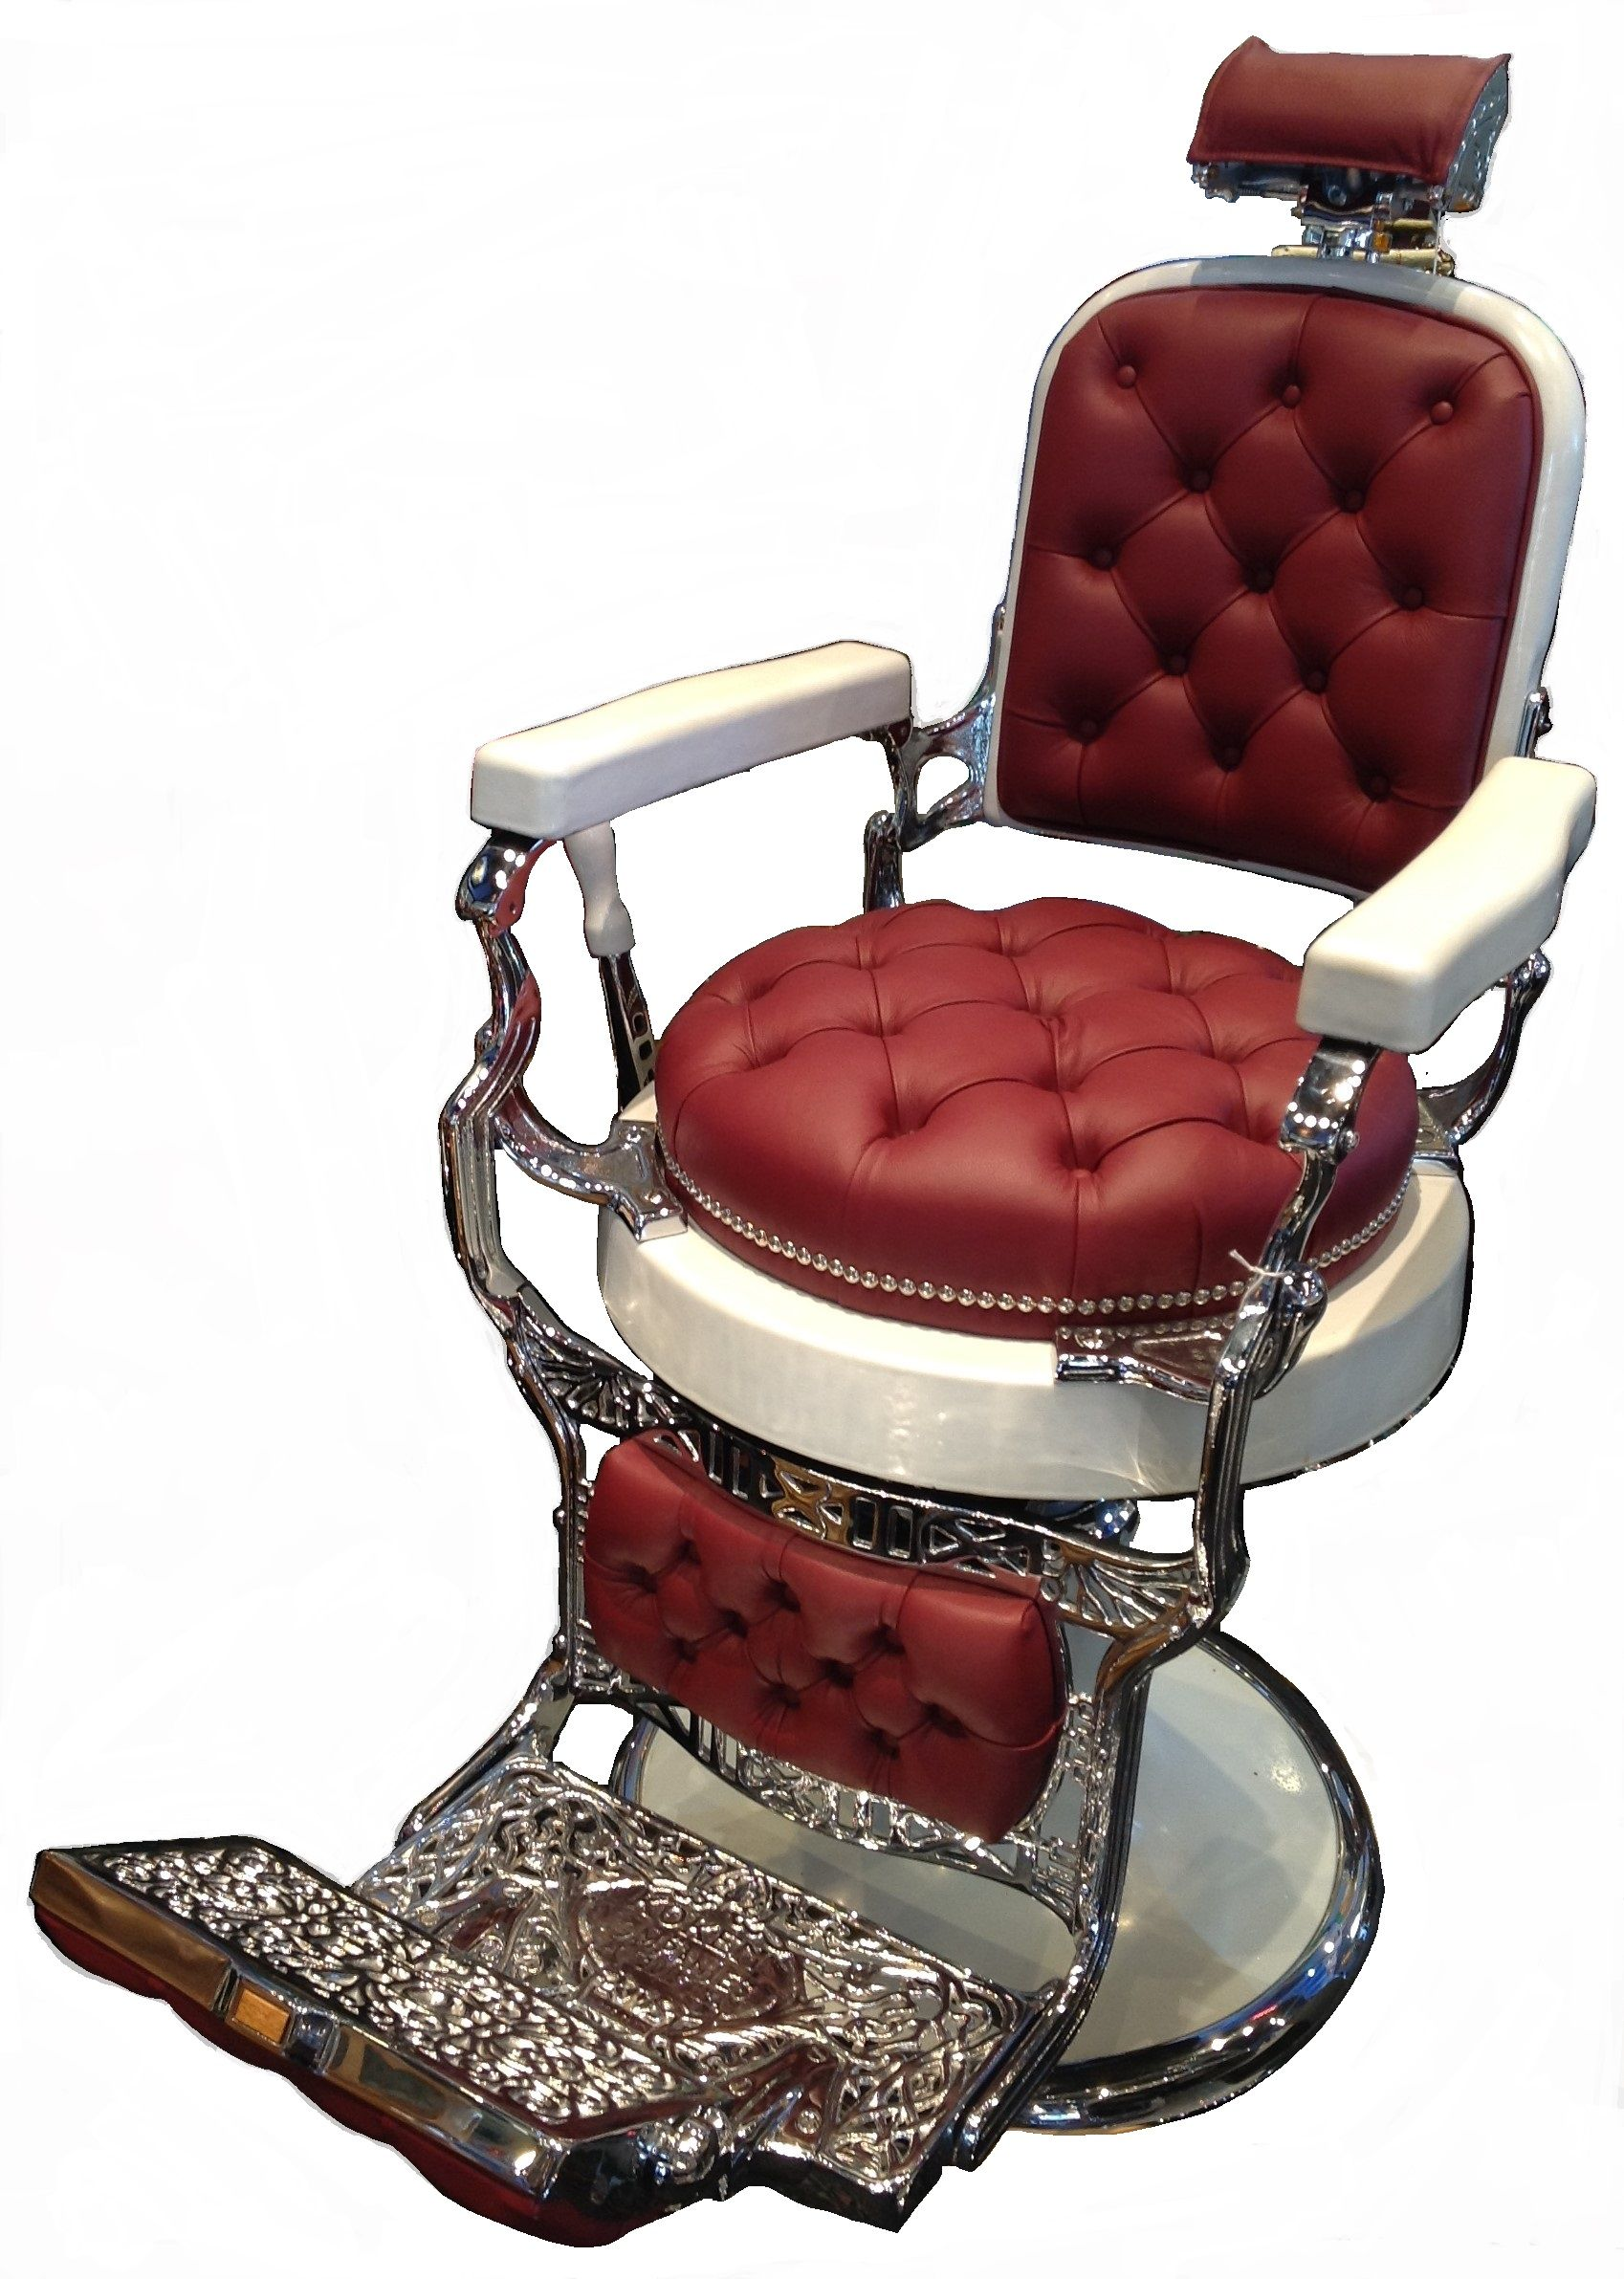 1930s Barber Chair Fully Restored With Red Leather Cushion